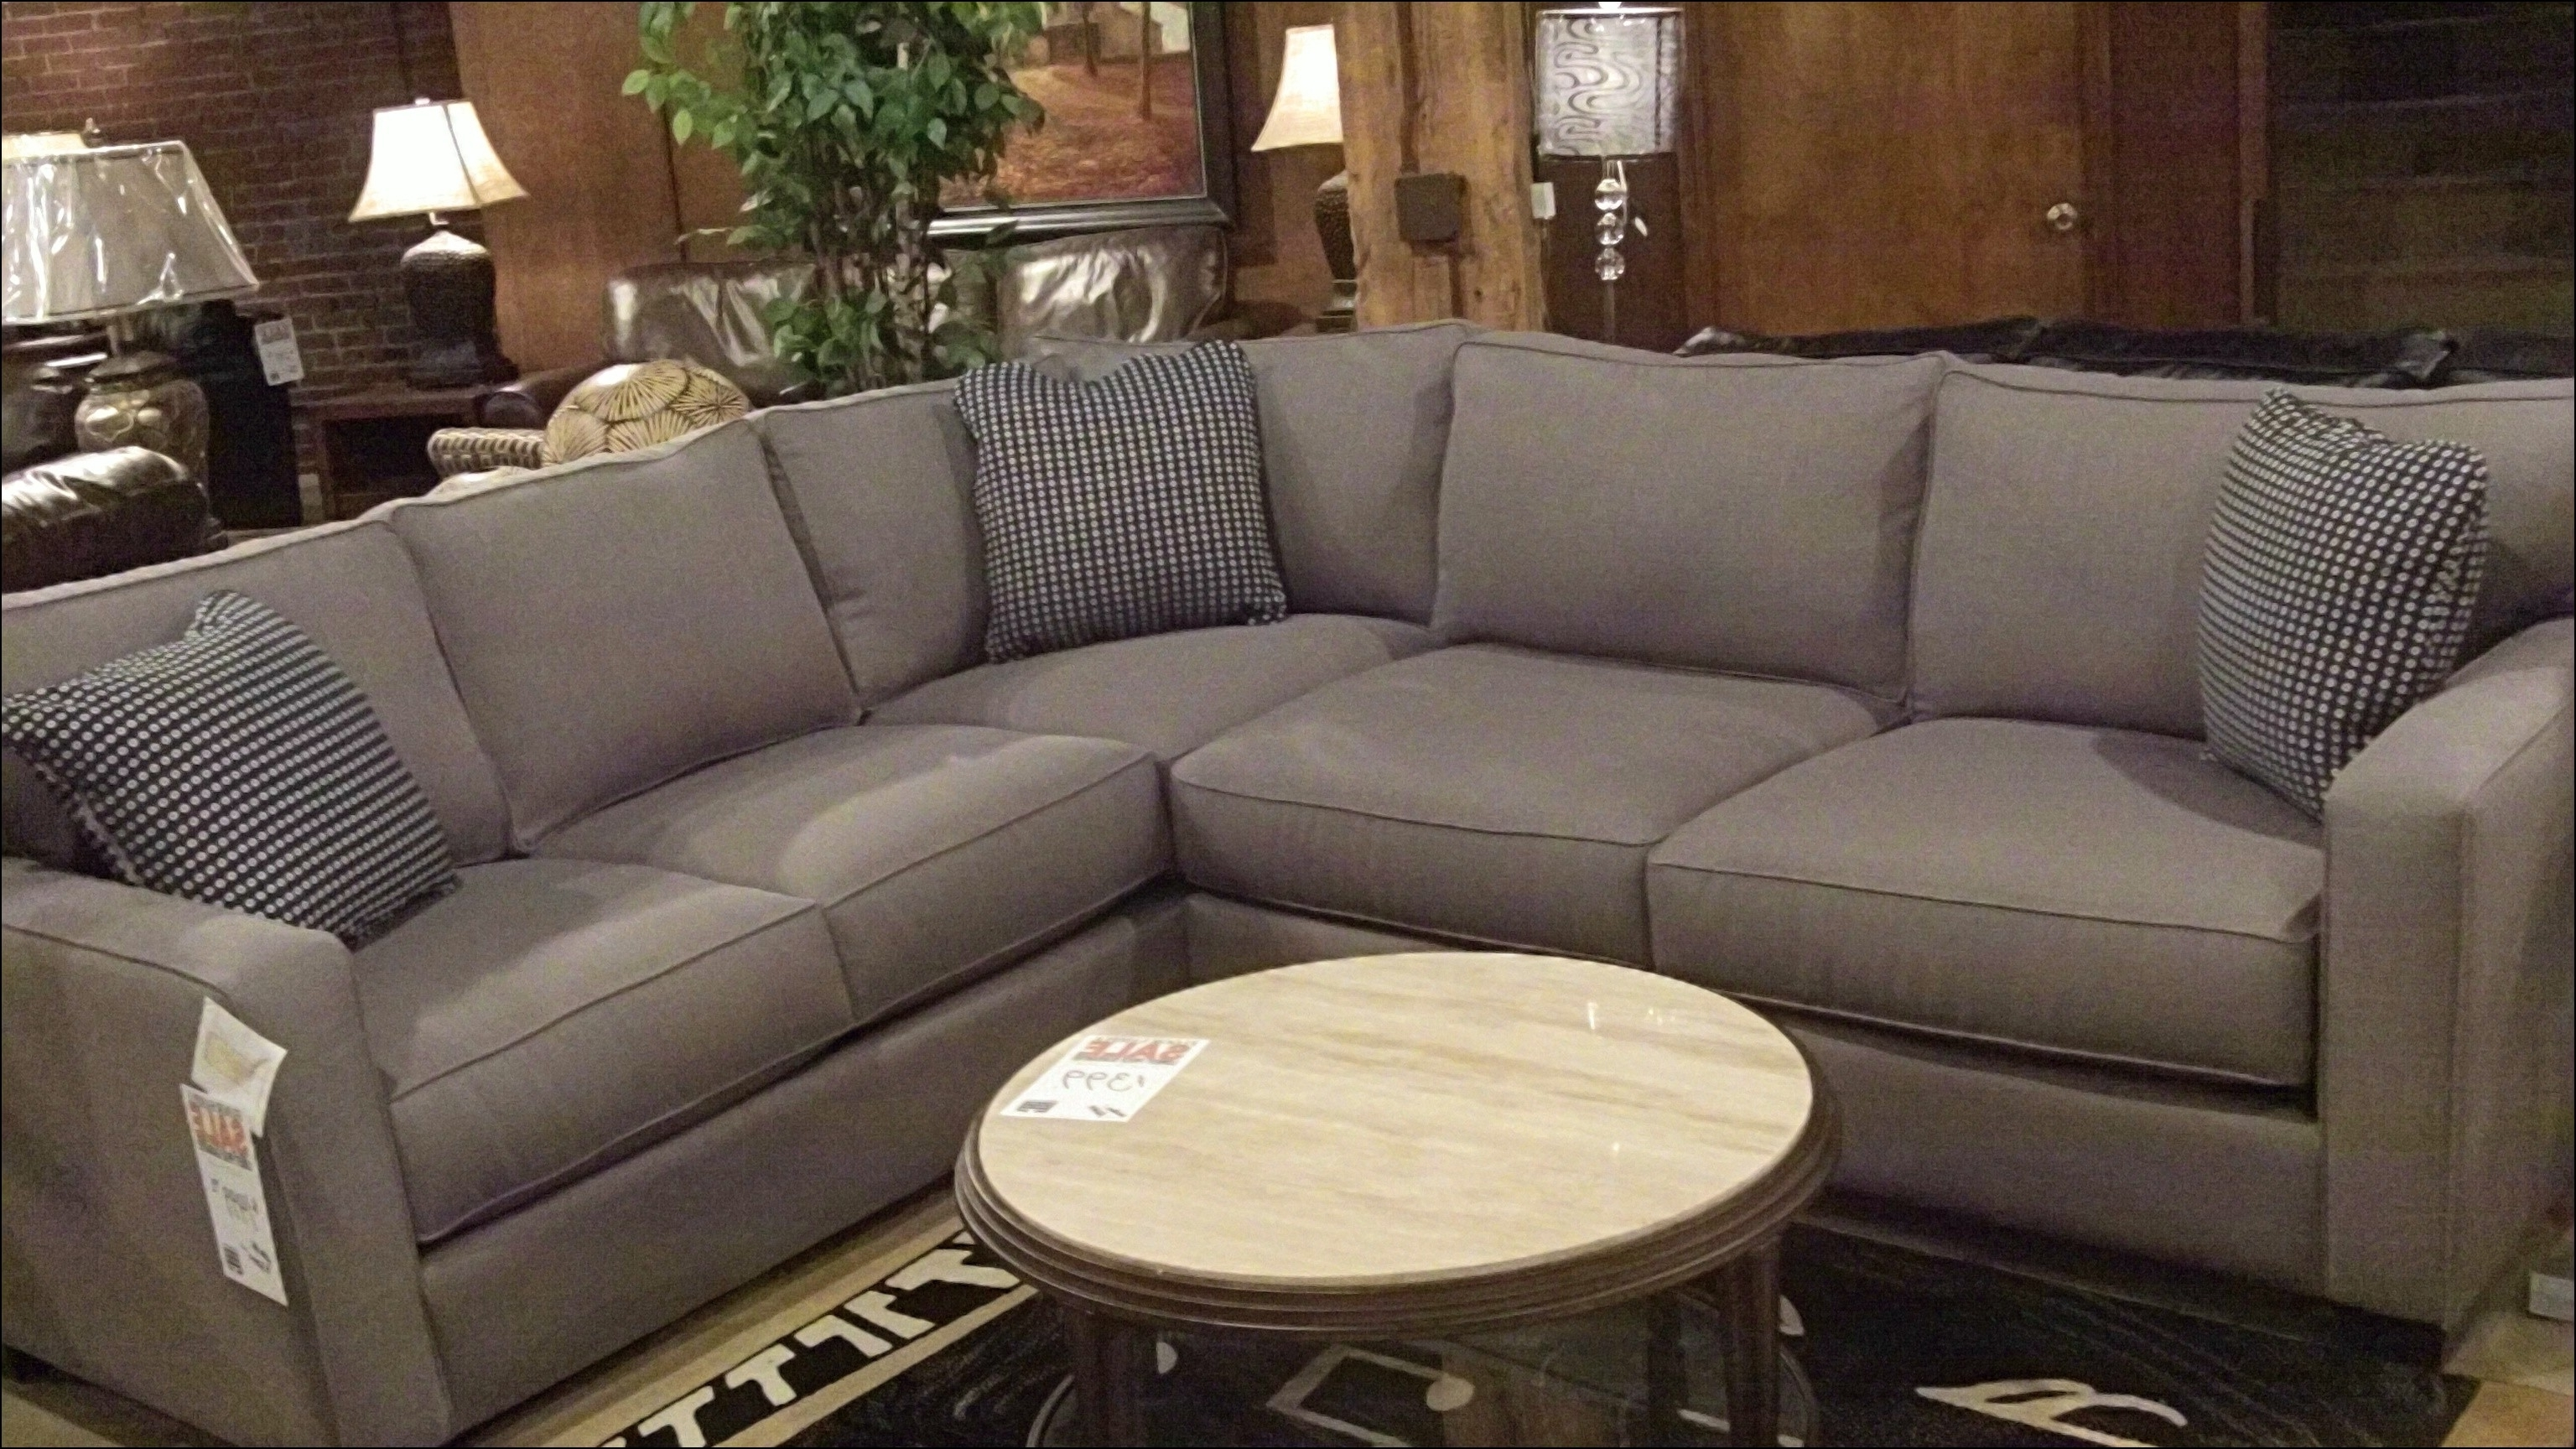 Tulsa Sectional Sofas In Famous Stylish Sectional Sofas Tulsa Ok – Buildsimplehome (View 5 of 15)